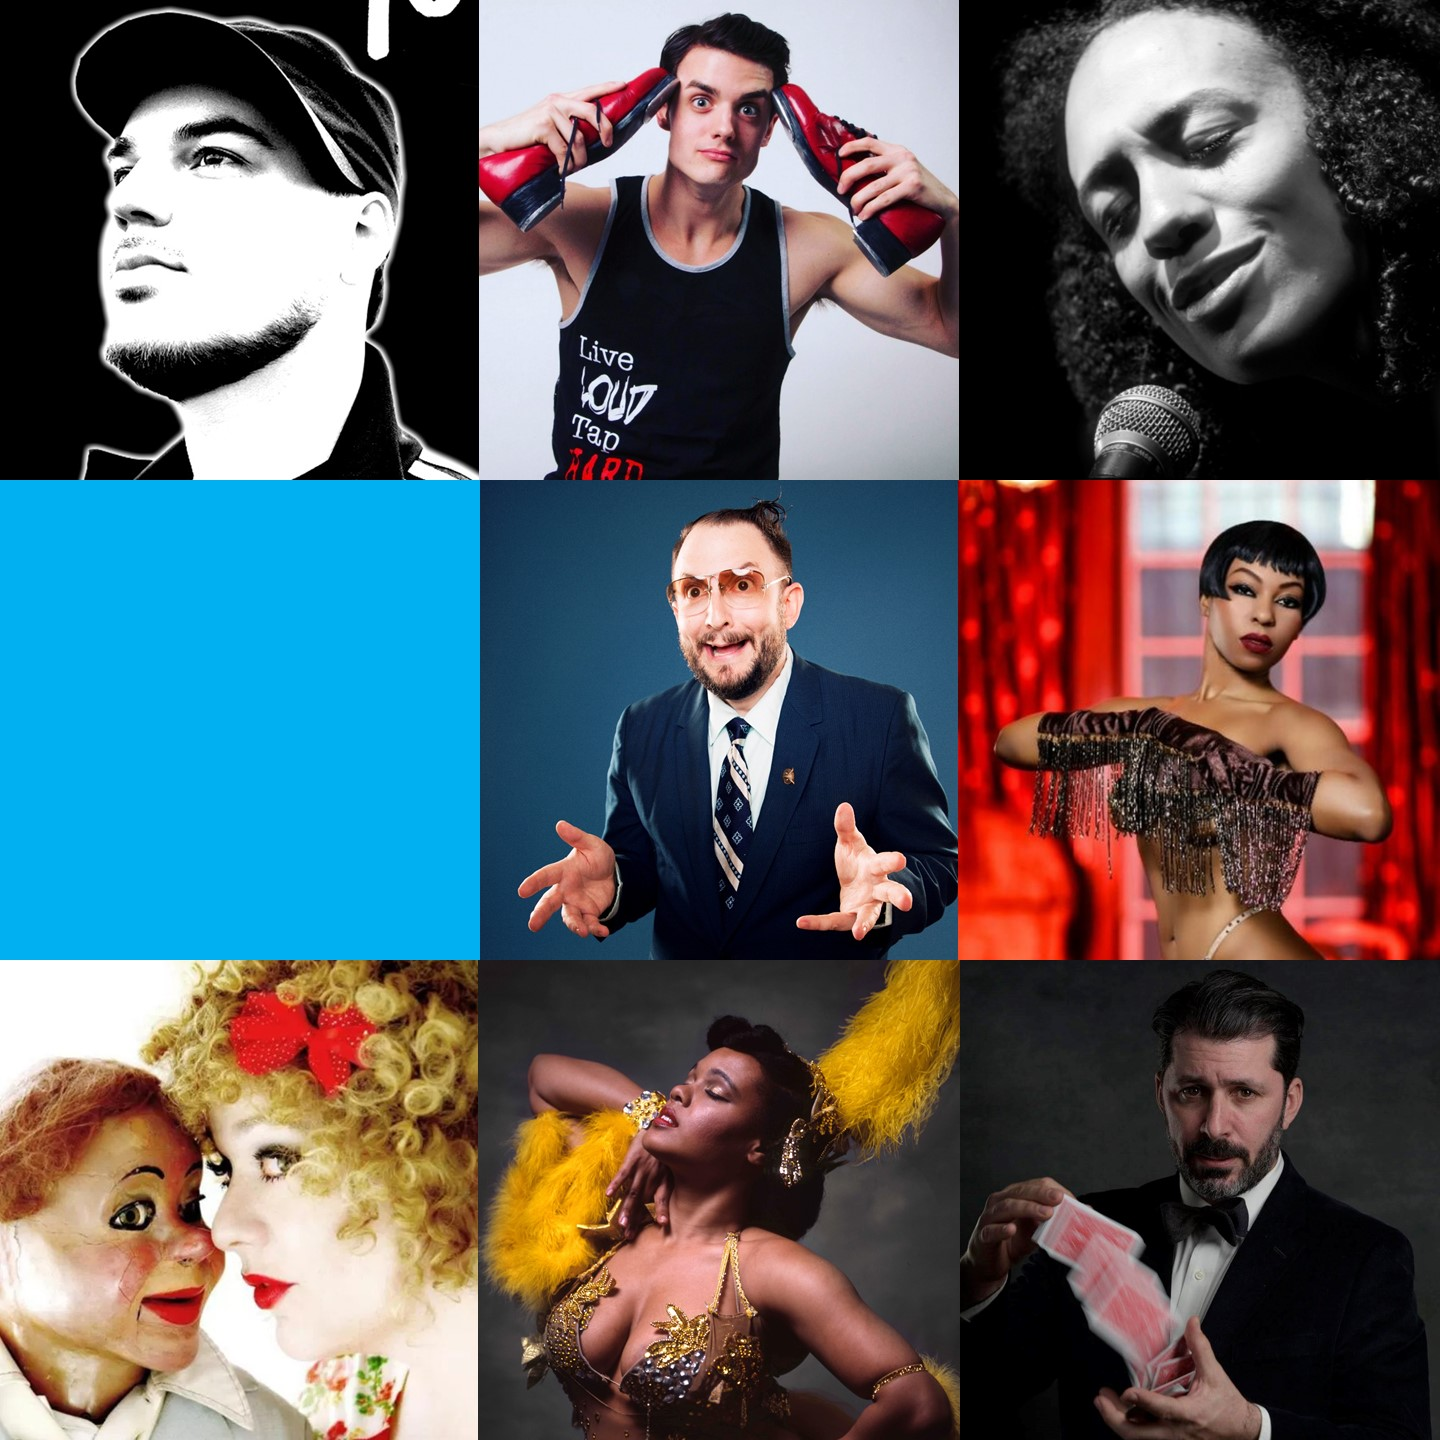 March 9 & 10, 2018   Hosted by Dale Seever  FEATURING: Chaney Sims & Yako 440  (Blues Singer & Multi-Instrumentalist) Carla Rhodes (Risque Ventriloquist) Mediocre Flow (Tap Buskers) The Great Dubini (Close-up Magic) Genie Adagio & Delysia Le Chatte (Scandalous Burlesque)